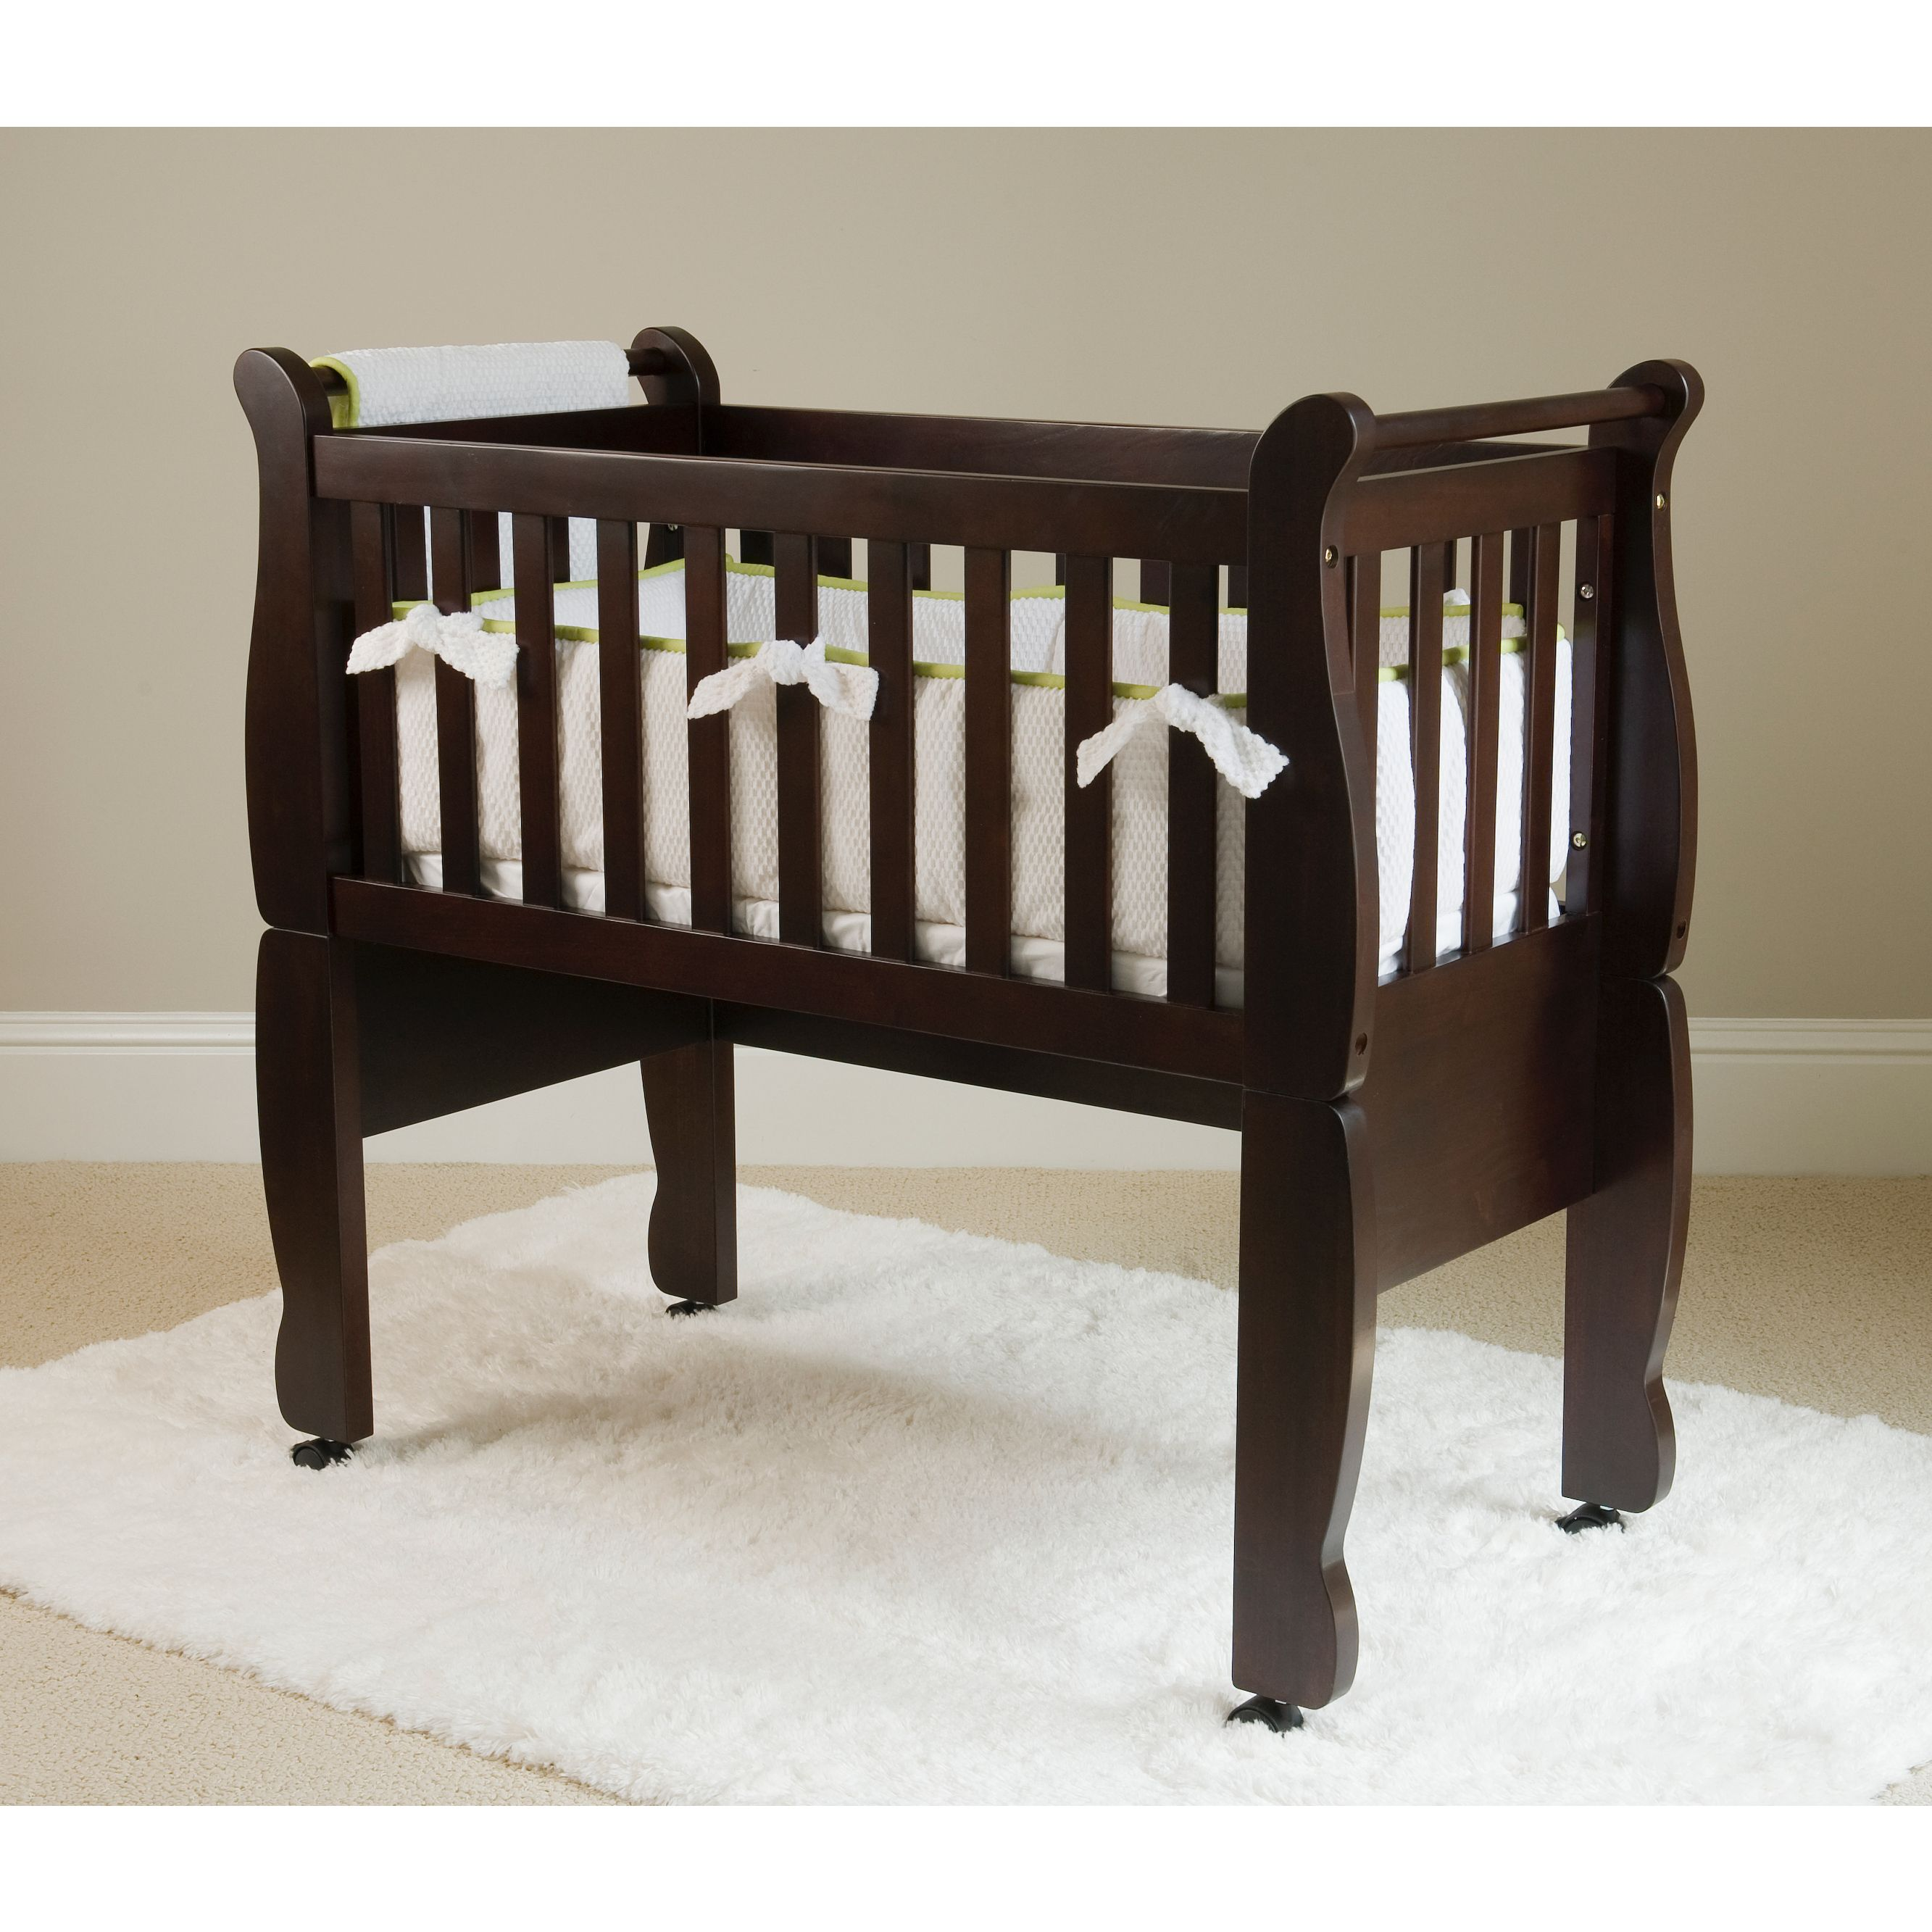 This versatile and elegant baby crib includes a wheel or rocker feature for the legs and a soft fitted mattress. Finished with New Zealand pine and an espresso stain, this cradle will fit in any home perfectly.